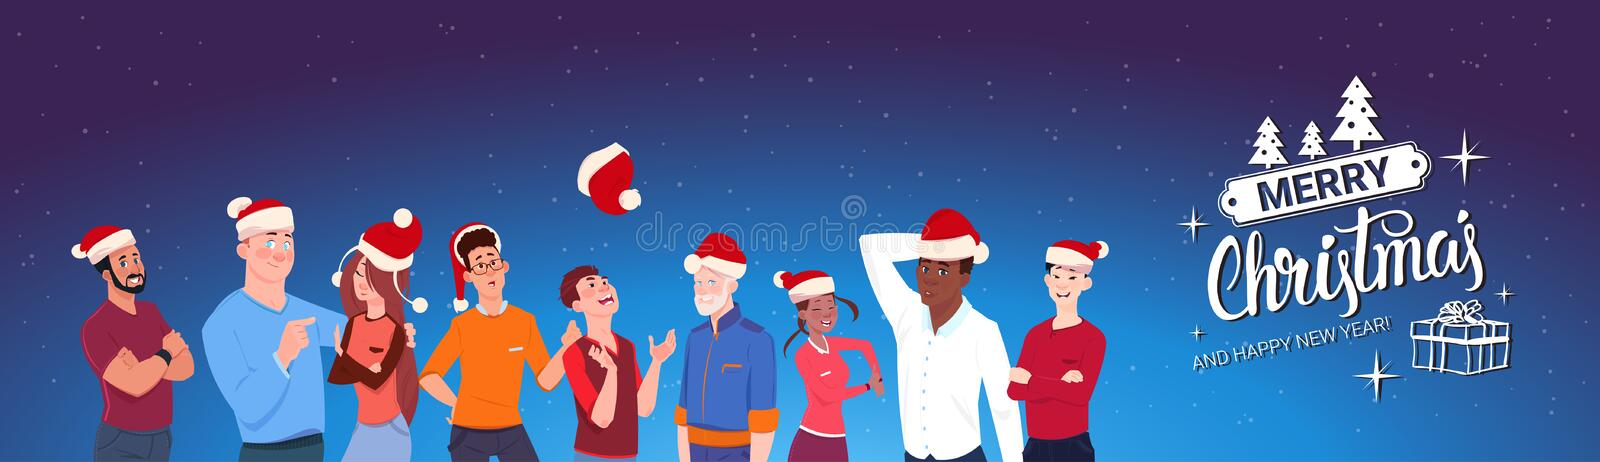 Group Of People Wearing Santa Hats Merry Christmas And Happy New Year Banner stock illustration